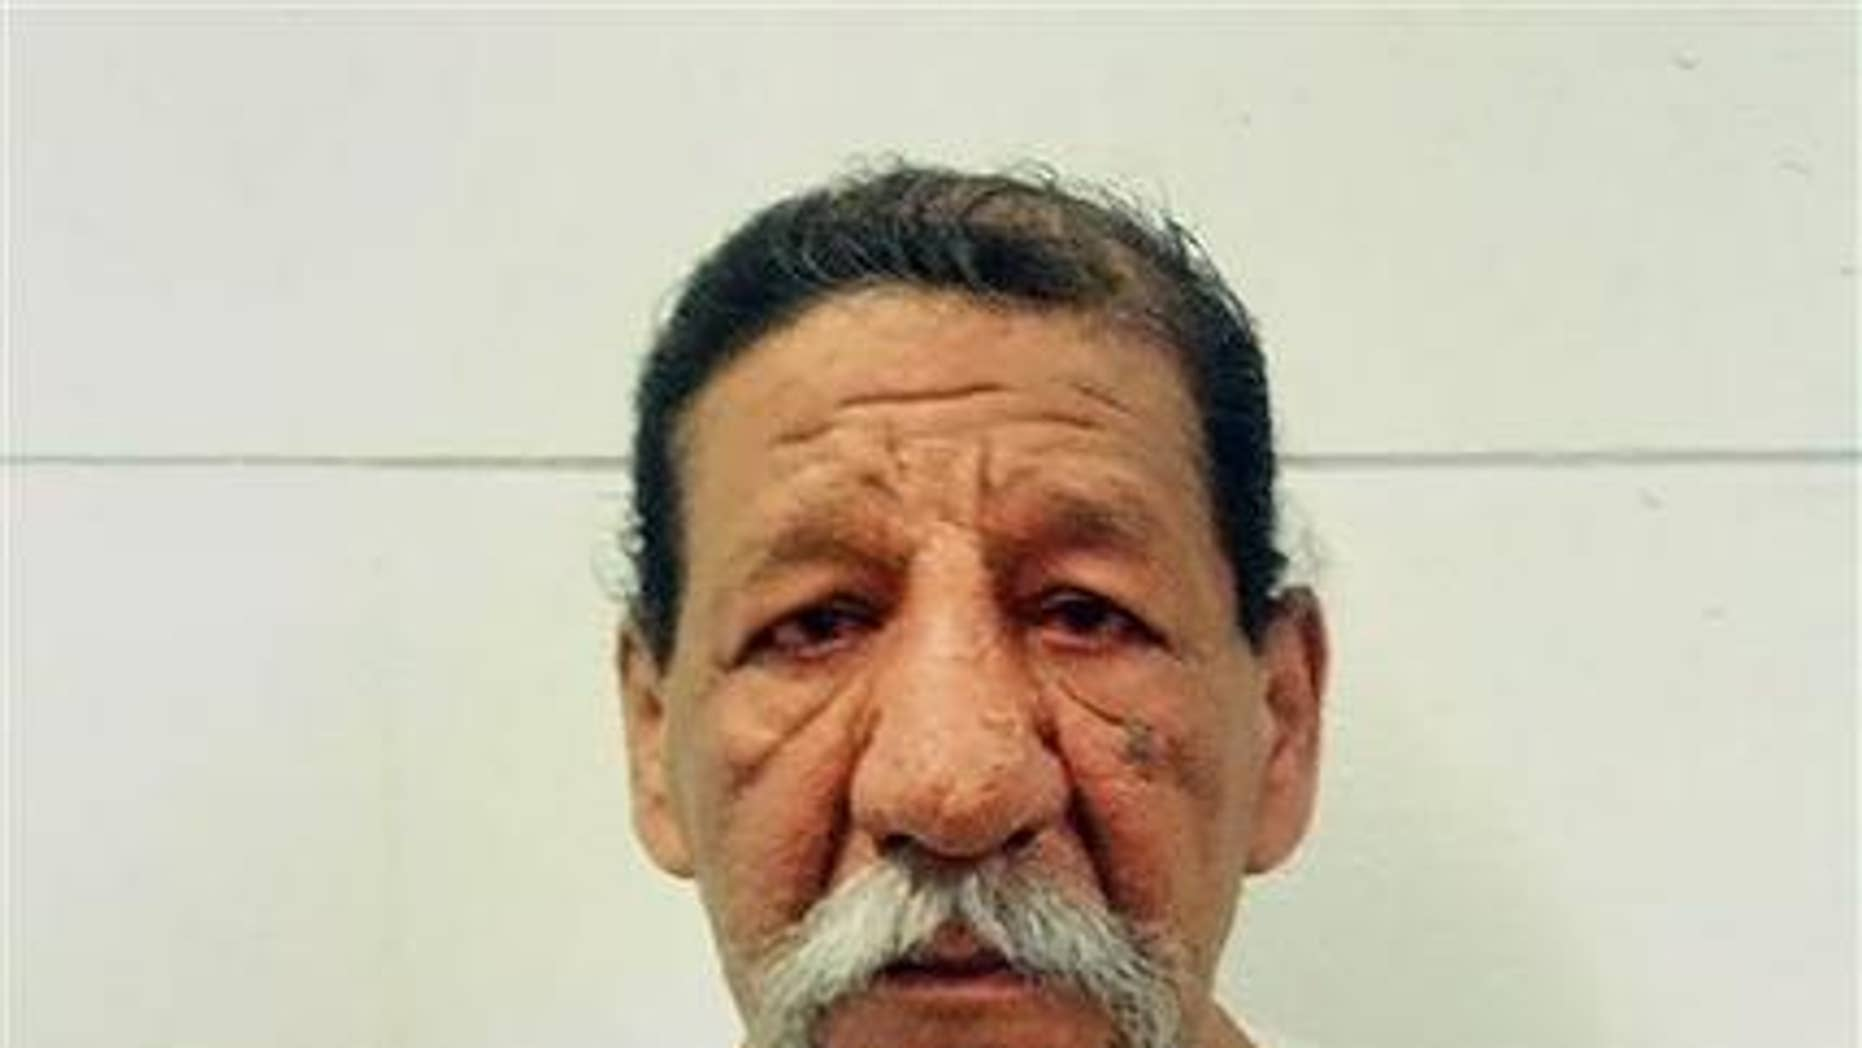 This image provided by the Utah Department of Corrections shows inmate Ramon C. Estrada.